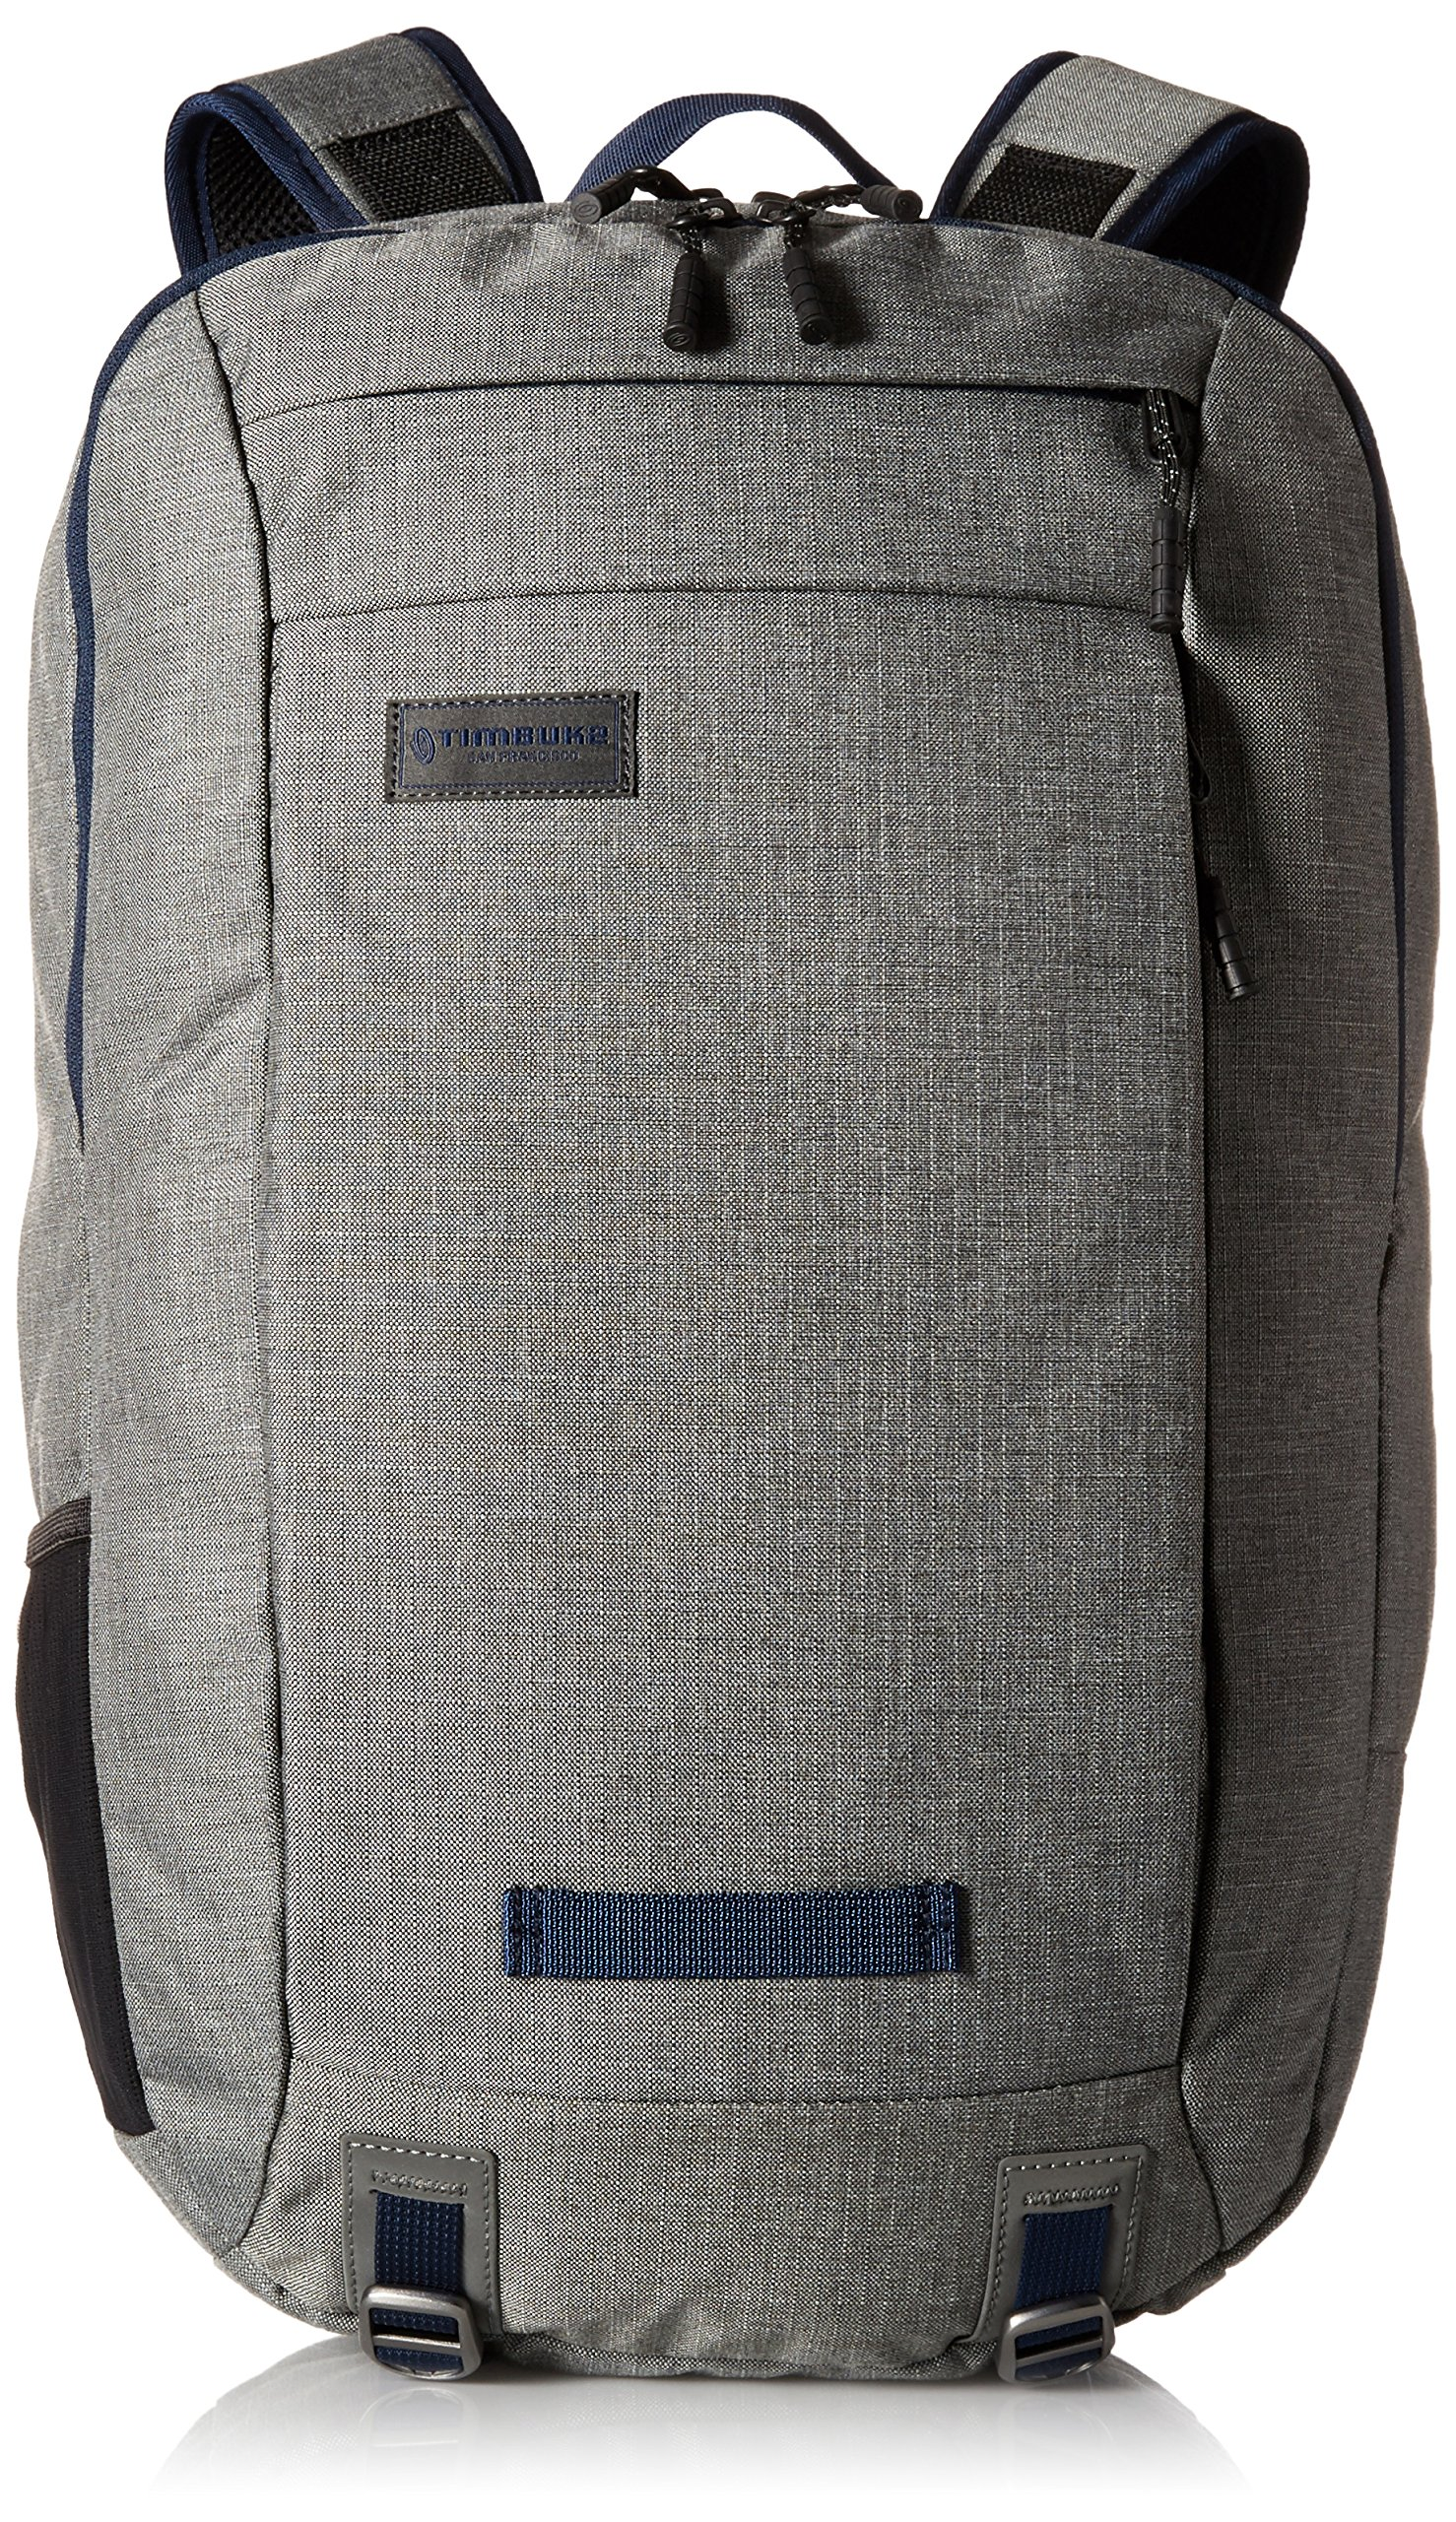 Timbuk2 Command Travel-Friendly Laptop Backpack, Midway